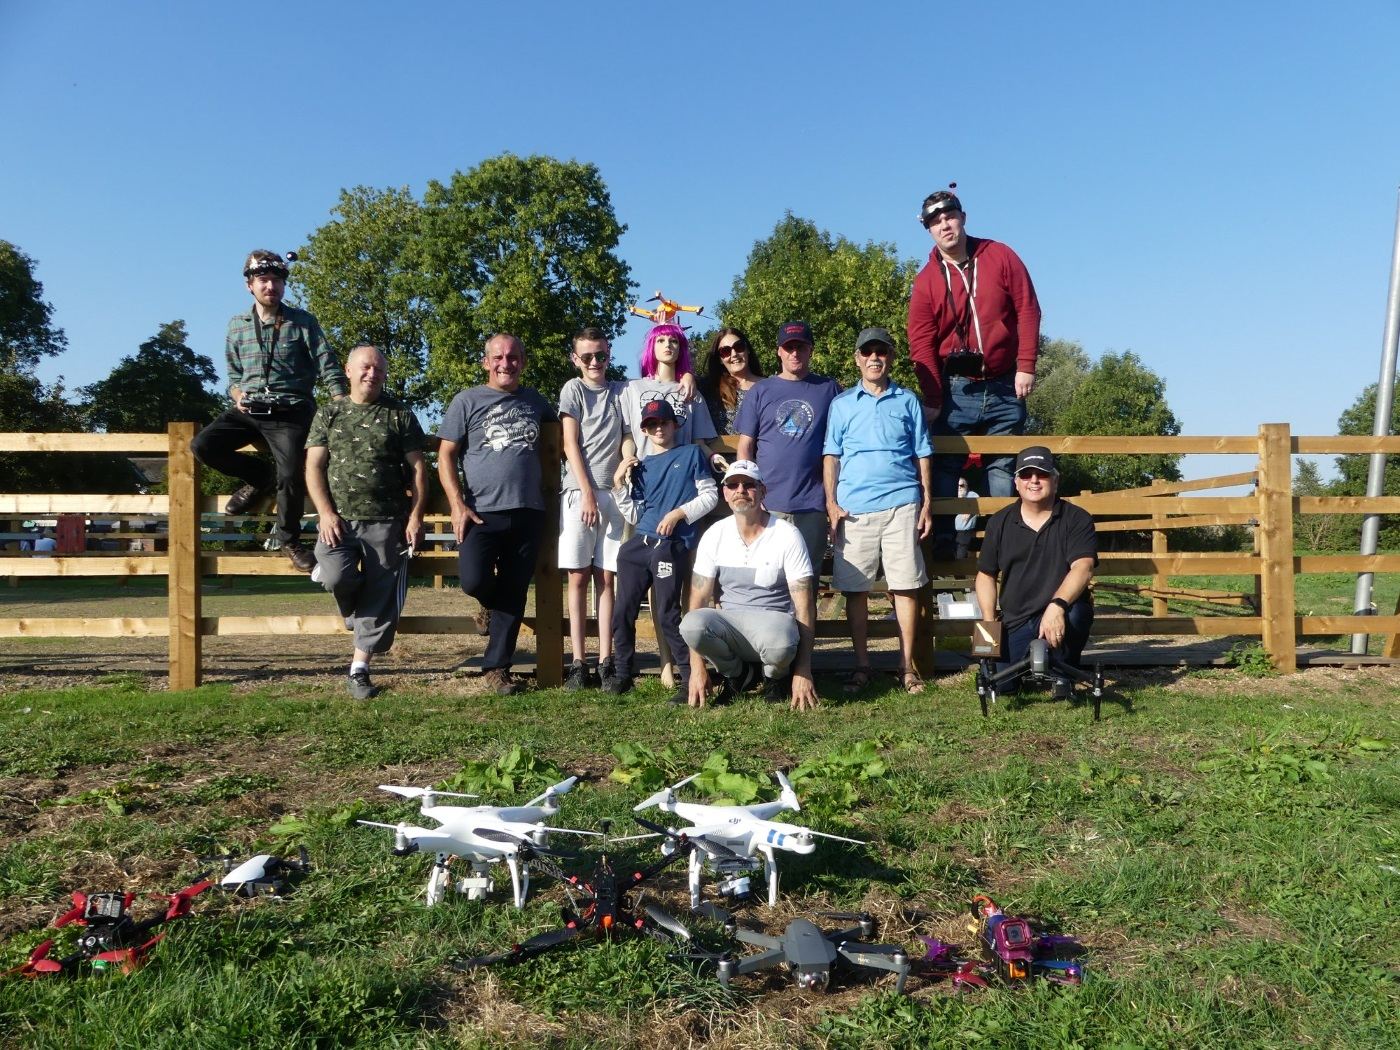 leicester drone club meet at The Gate Hangs Well, Syston